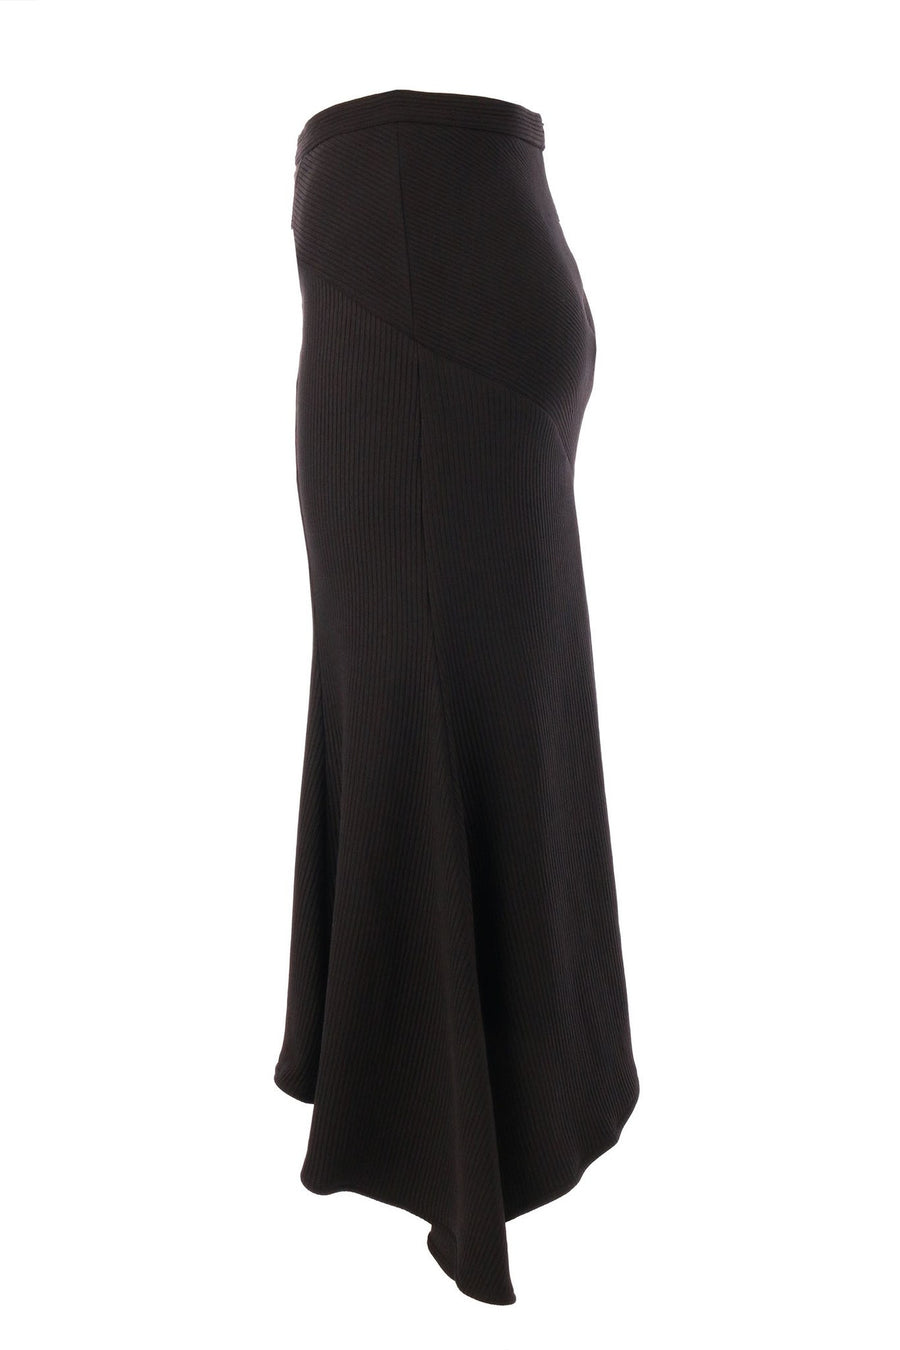 Lori Trumpet Midi Skirt by Shona Joy in black